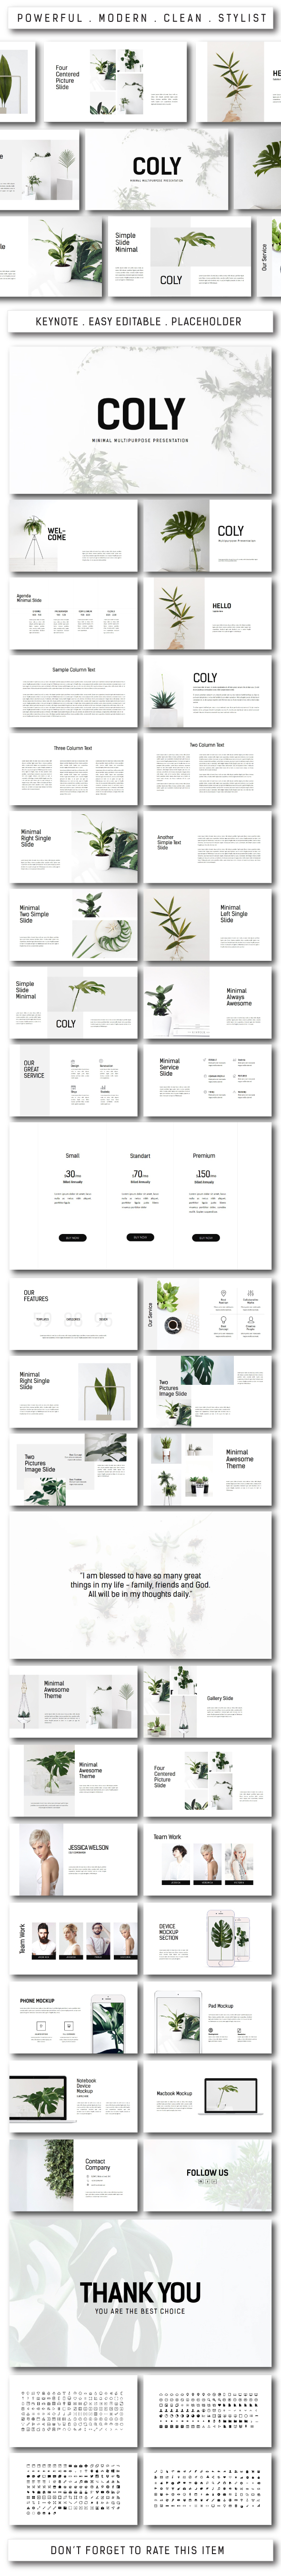 Coly Multipurpose Keynote - Keynote Templates Presentation Templates